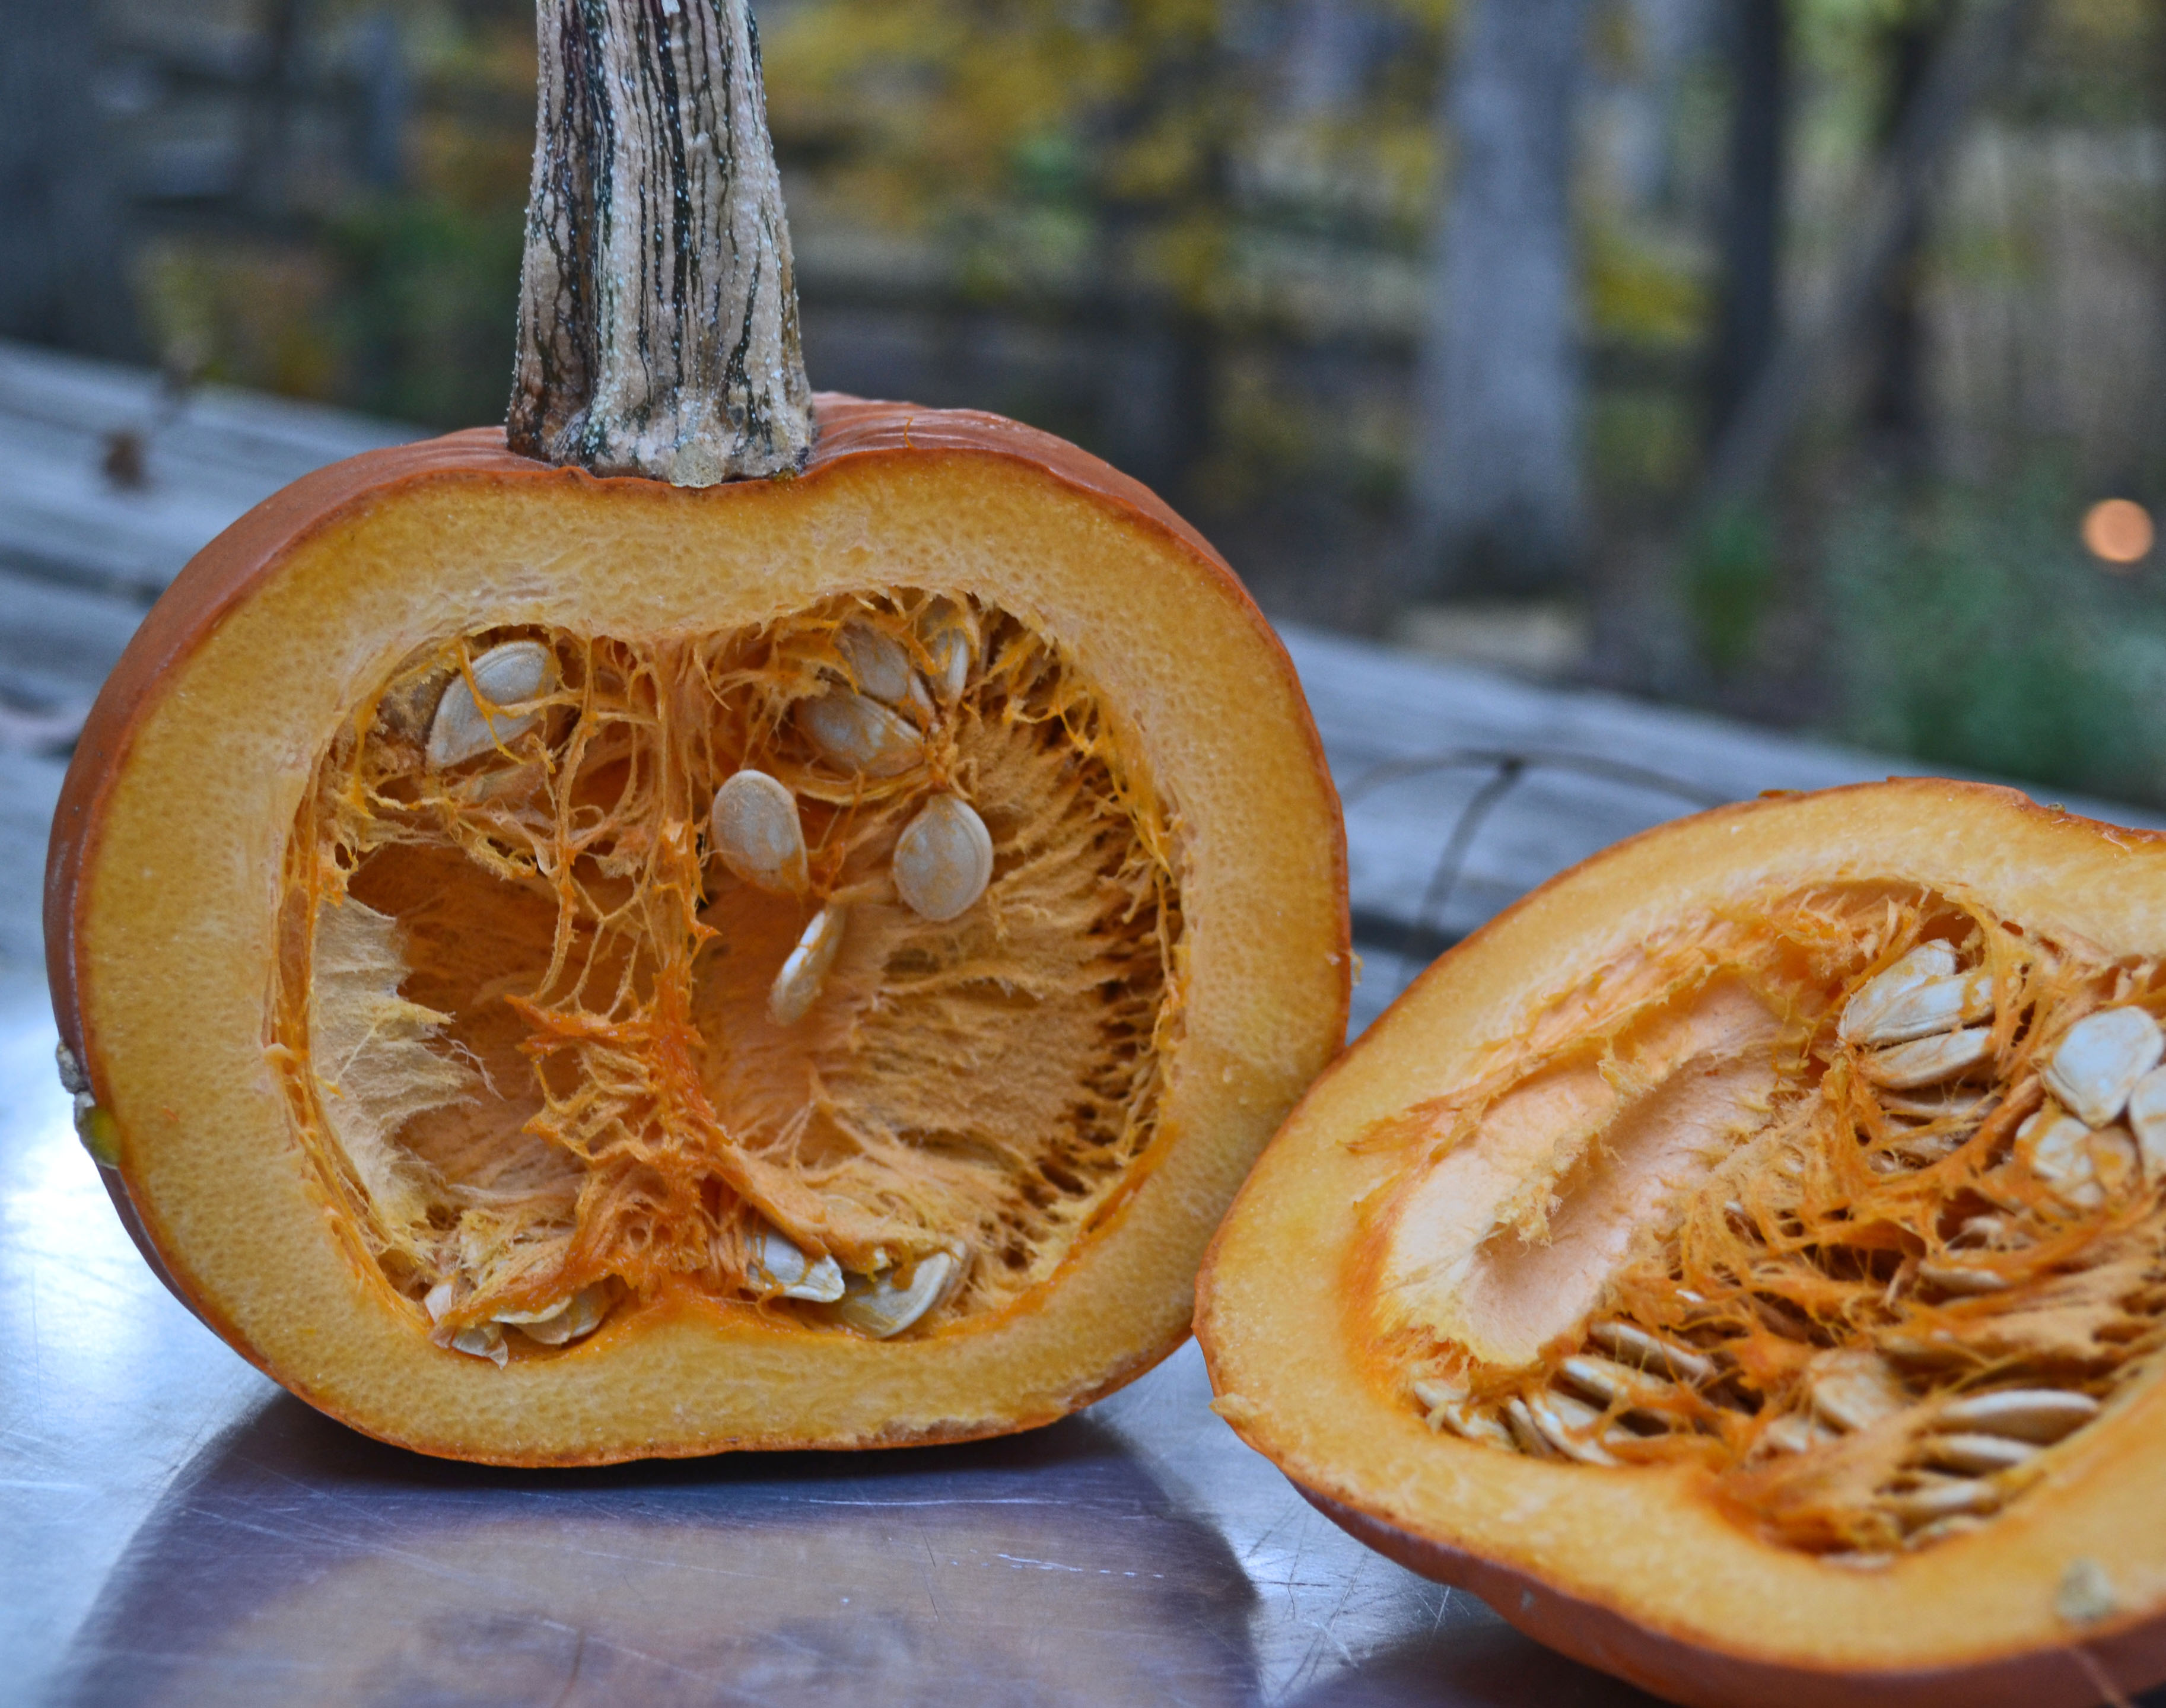 Four things you can do with leftover pumpkin guts - Informing Ape